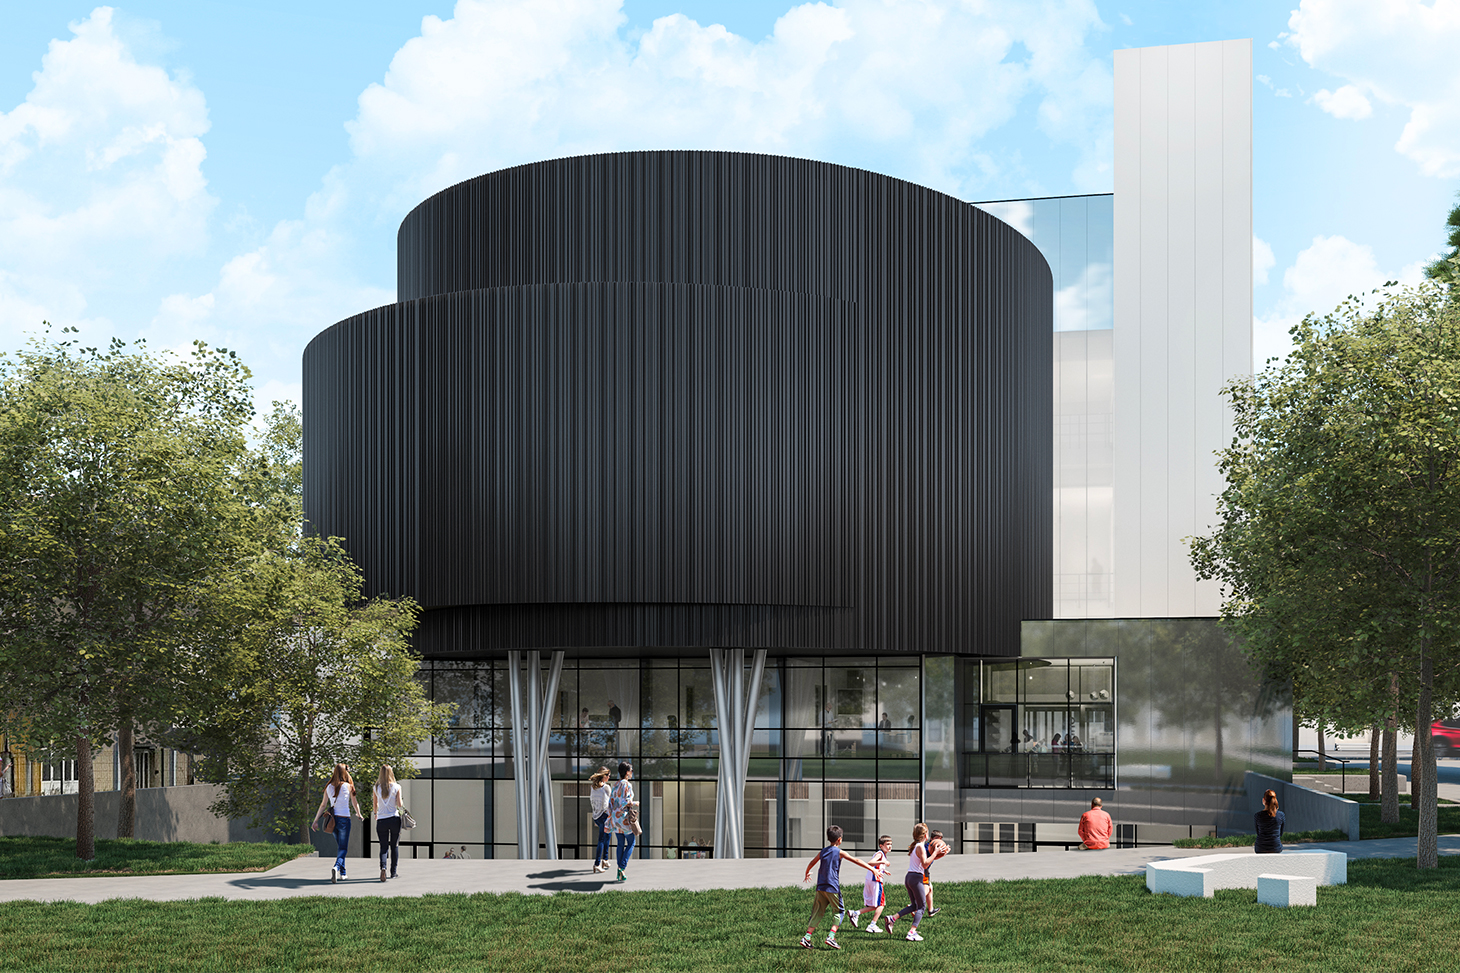 Le futur Centre de sciences - Moulins de Villancourt - Pont-de-Claix